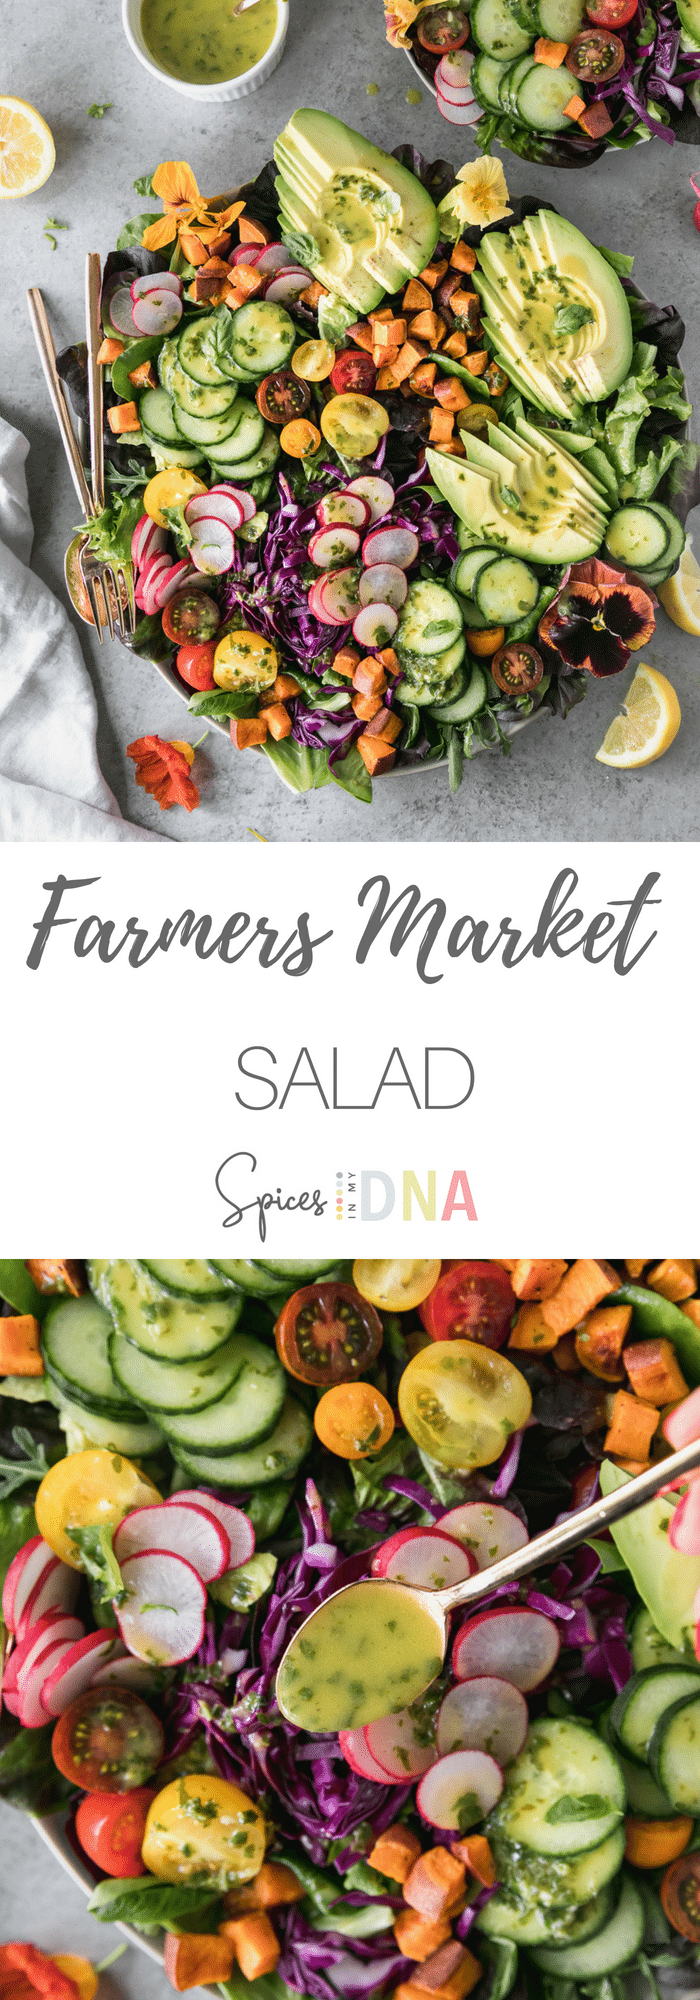 This Farmers Market Salad is filled with lots of fresh veggies, roasted sweet potato, avocado, and a delicious lemon honey basil dressing! It's SO fresh, and you can throw whatever veggies you love in it! It's meant to be made with whatever you have on hand, or whatever looks good at the farmer's market! The perfect light summer meal! #easymeal #salad #summersalad